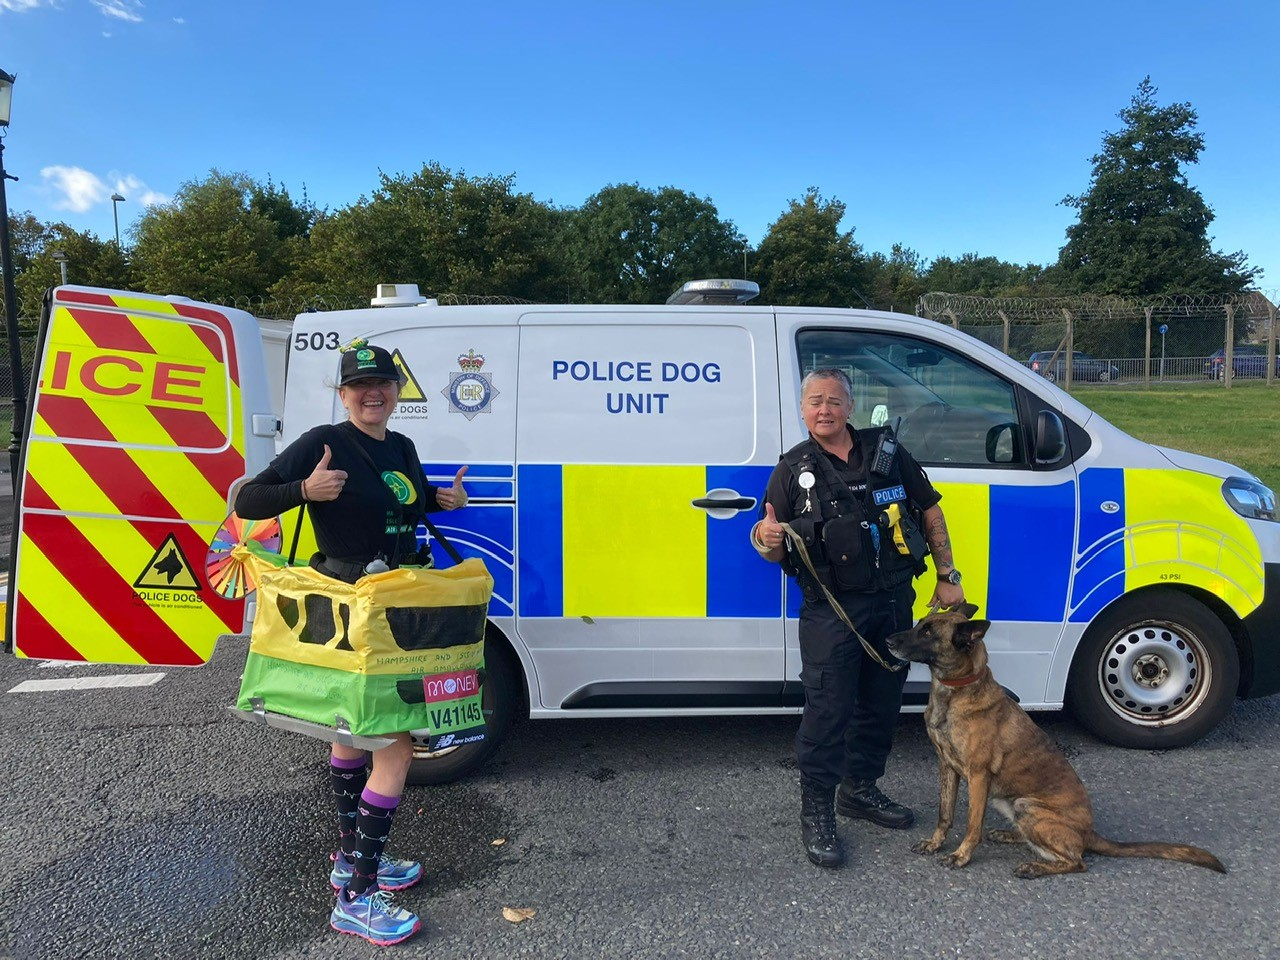 A runner standing in front of the Police Dog Unit van with a police officer and police dog